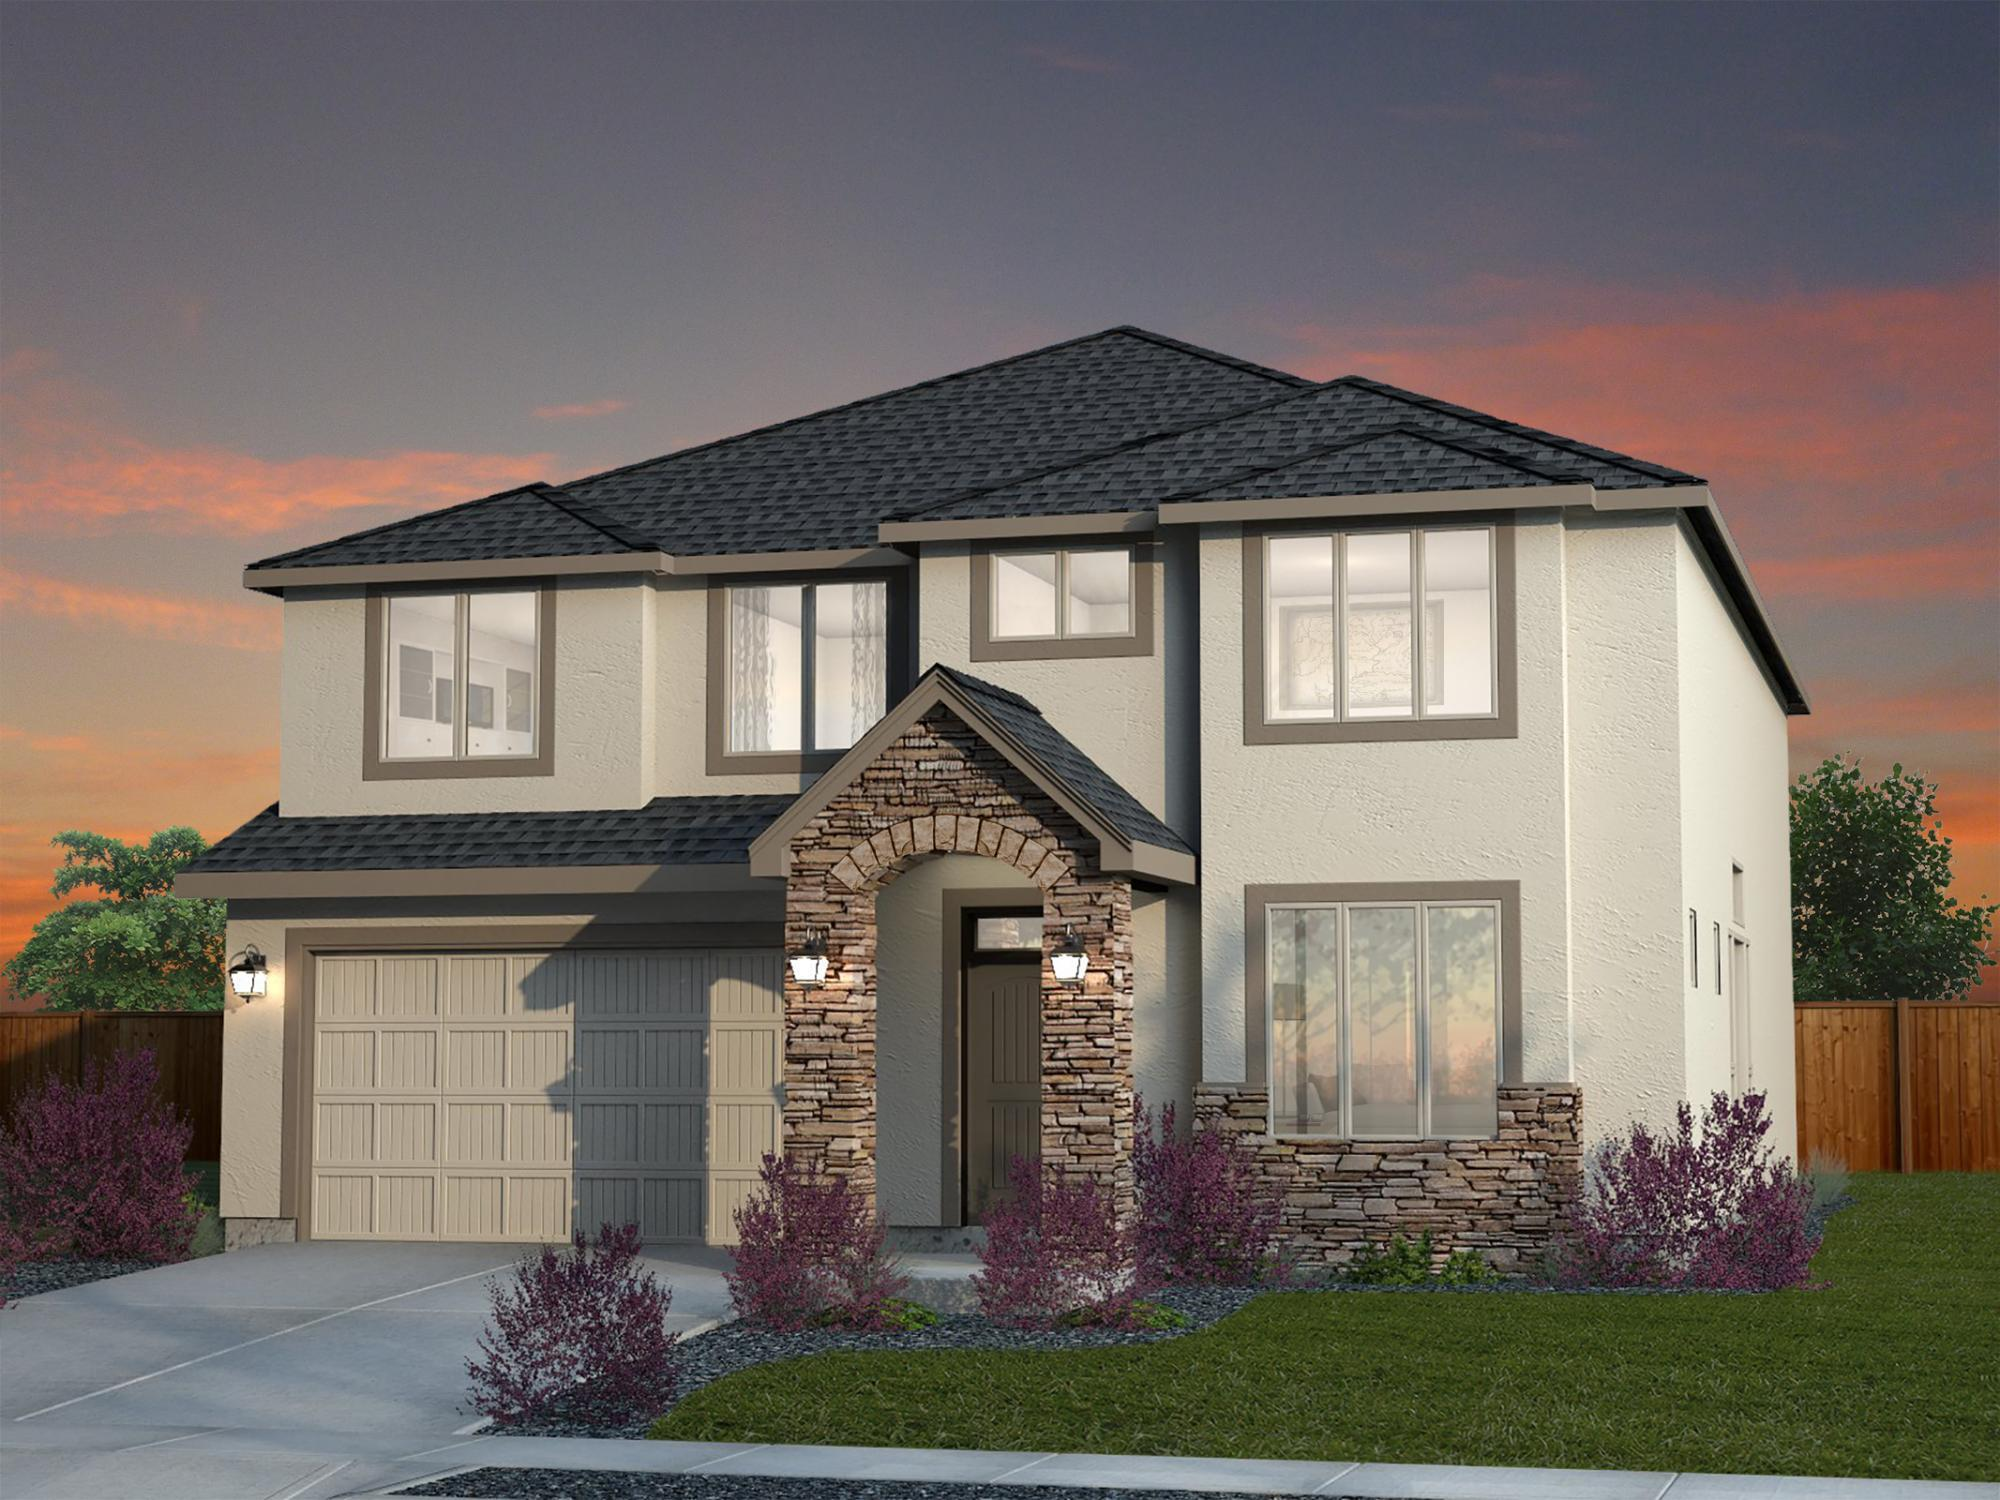 Single Family for Sale at Columbia Terrace - Olympia 9911 Silverbright Drive Pasco, Washington 99301 United States